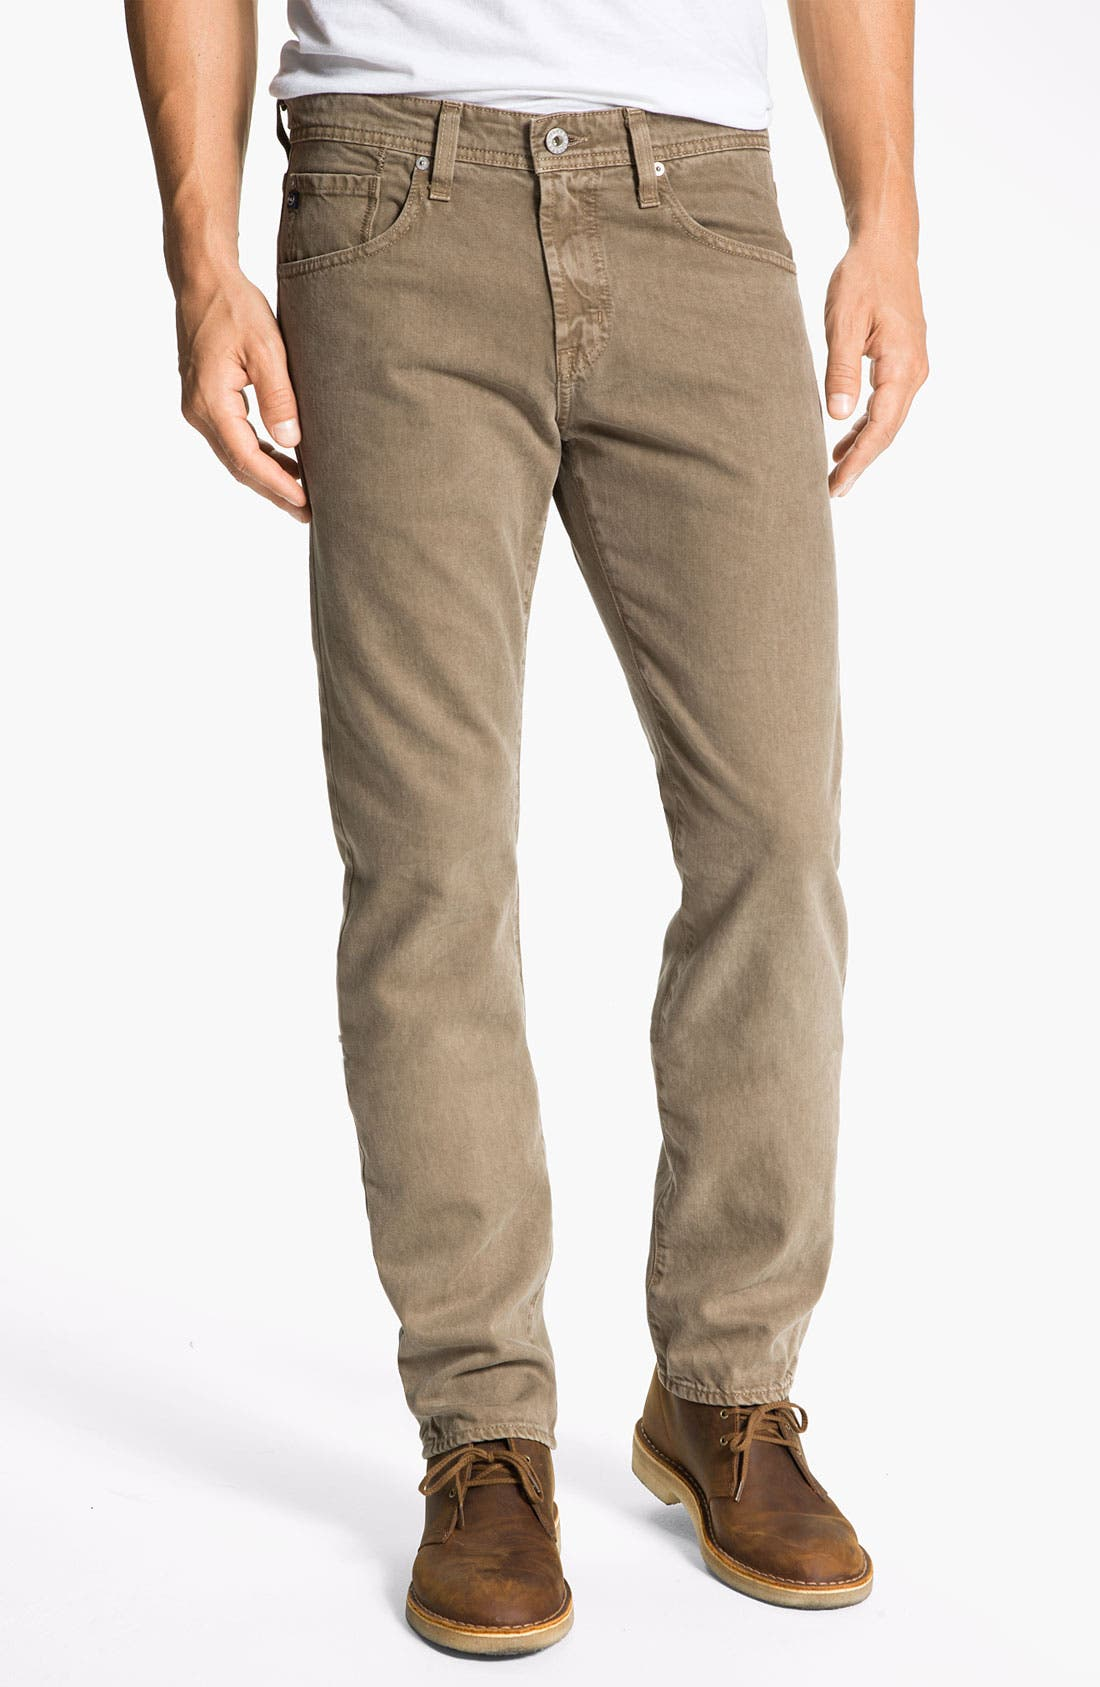 Alternate Image 1 Selected - AG Jeans 'Matchbox' Slim Straight Leg Jeans (Sulfur Beechwood)